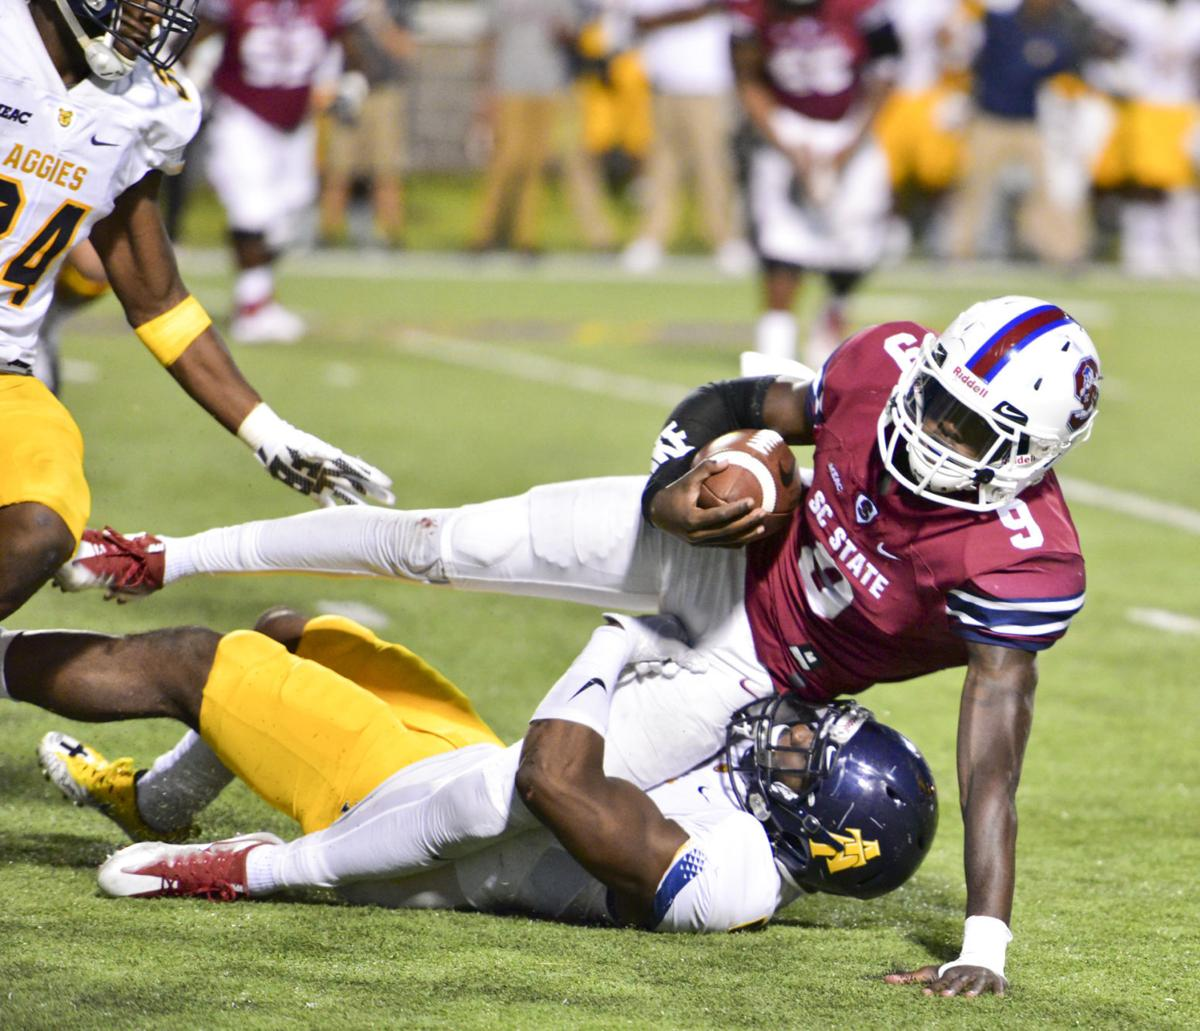 SC State vs. N.C. A&T